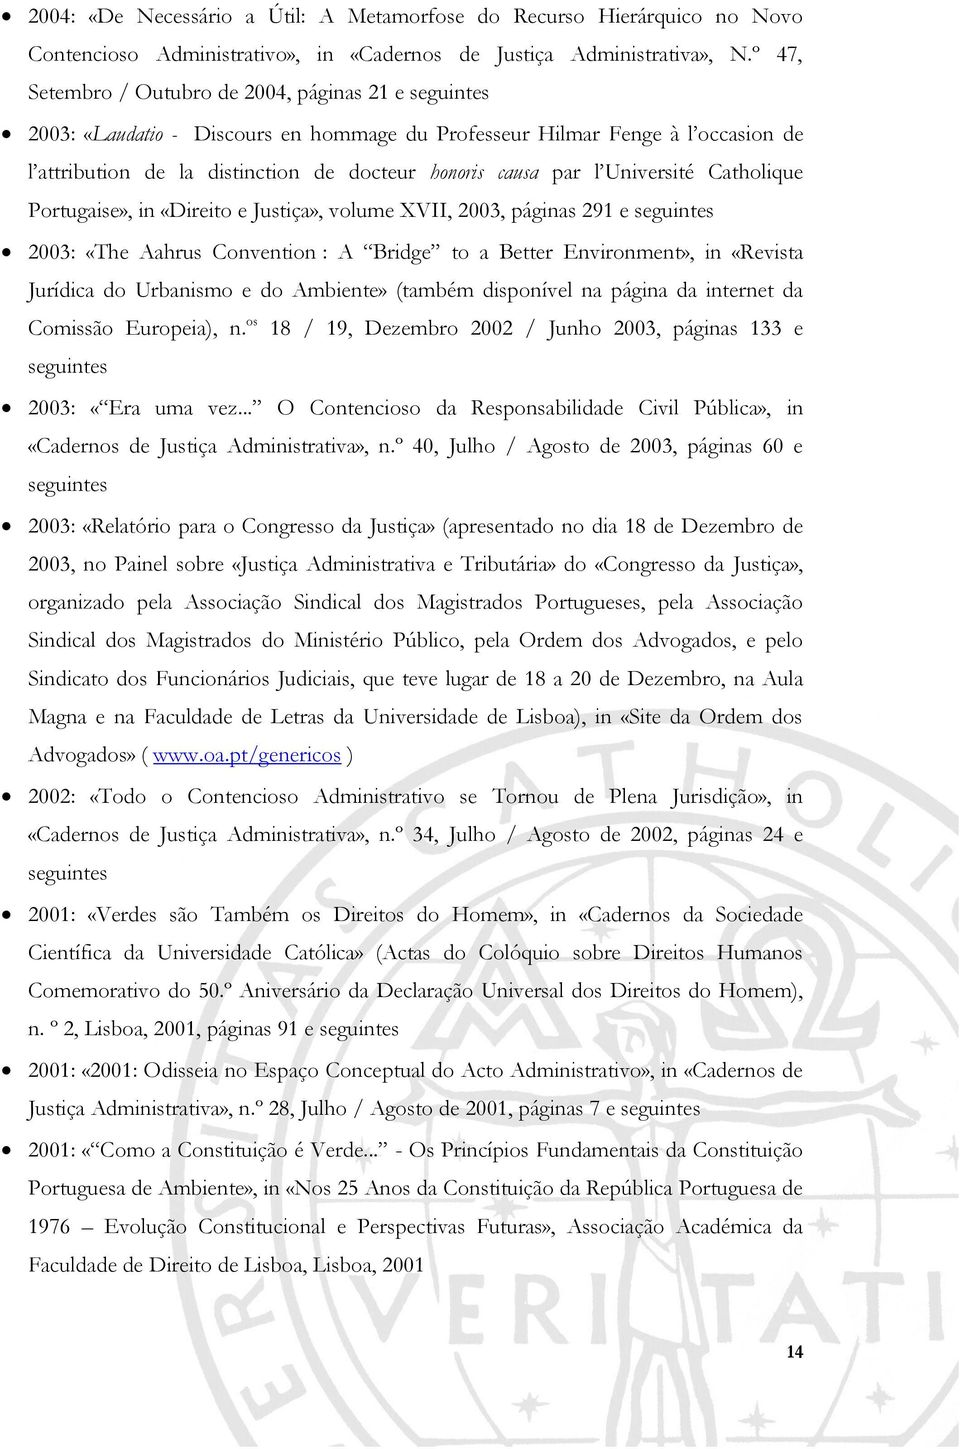 l Université Catholique Portugaise», in «Direito e Justiça», volume XVII, 2003, páginas 291 e seguintes 2003: «The Aahrus Convention : A Bridge to a Better Environment», in «Revista Jurídica do